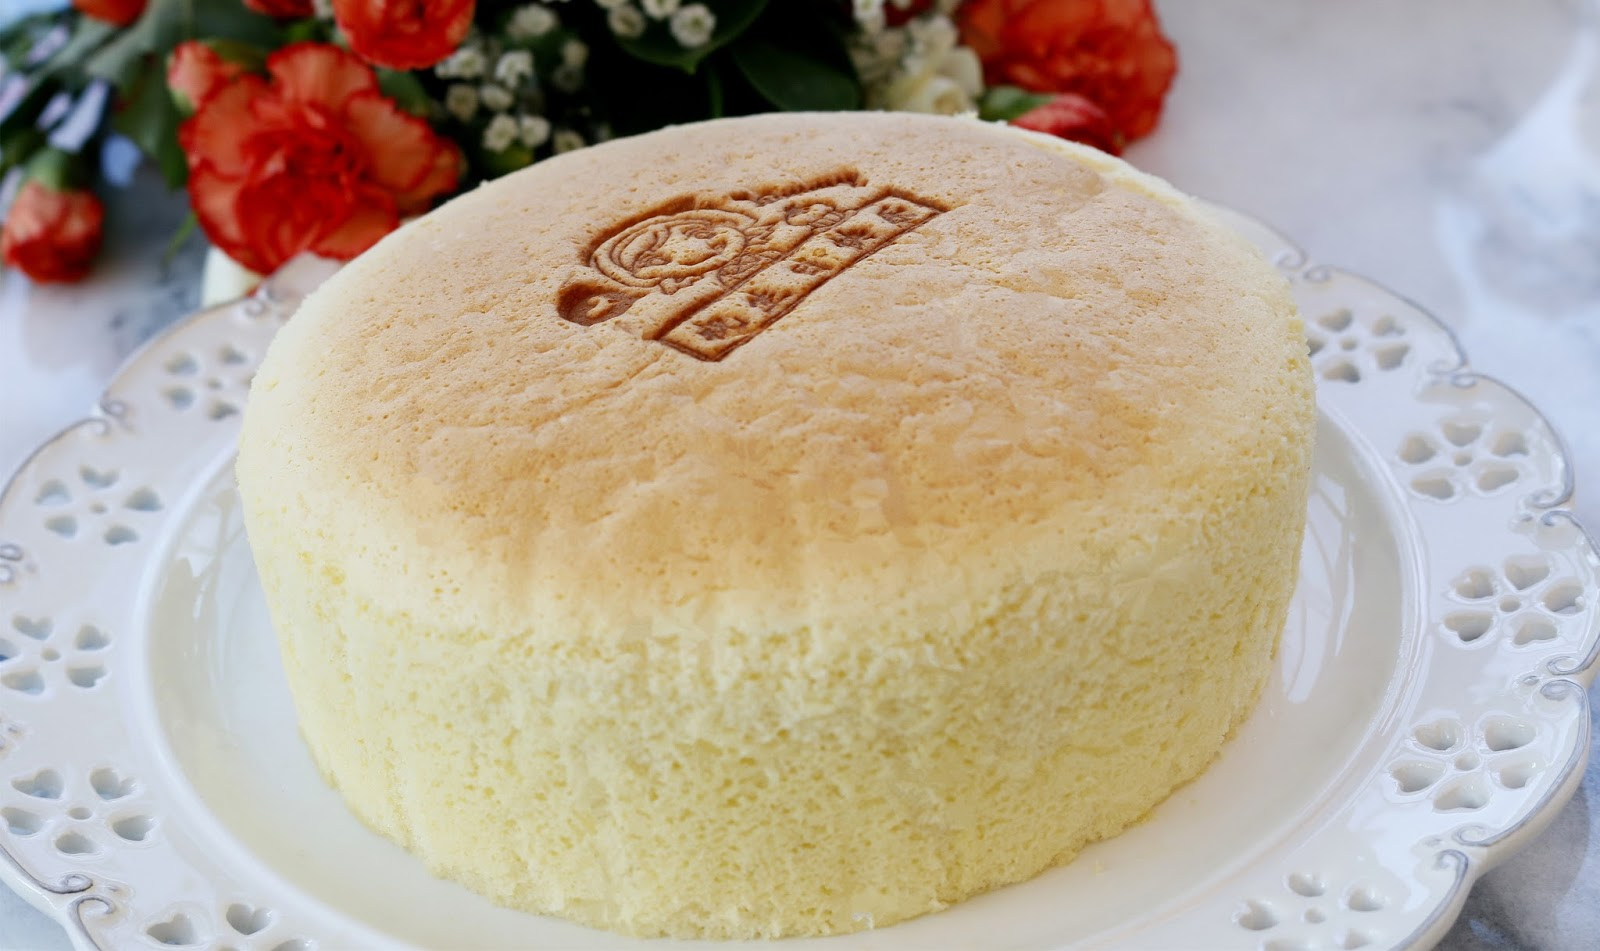 josephine 39 s recipes how to make soft vanilla sponge cake